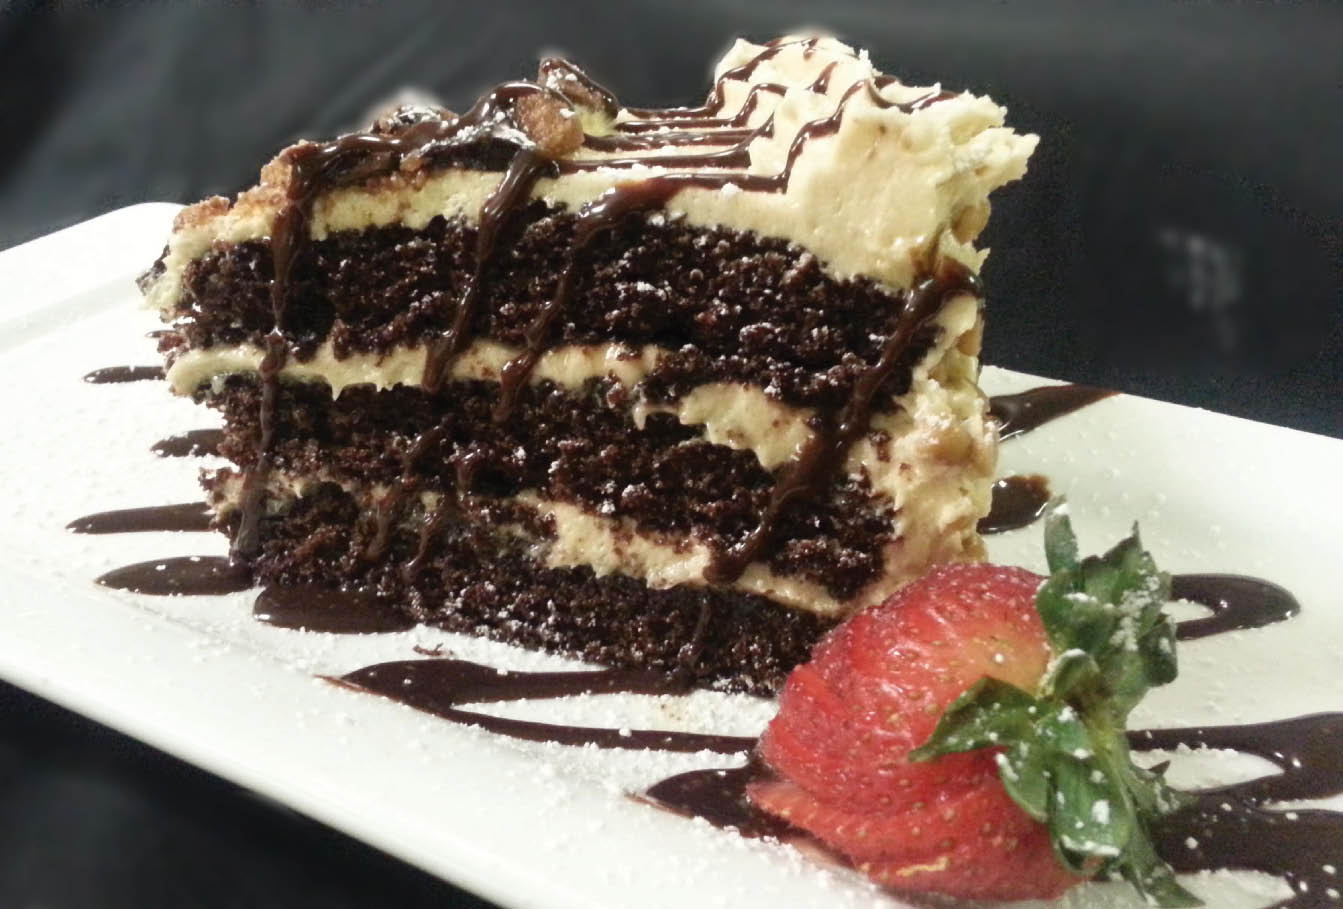 Grab our restaurant coupons for dessert in Omaha